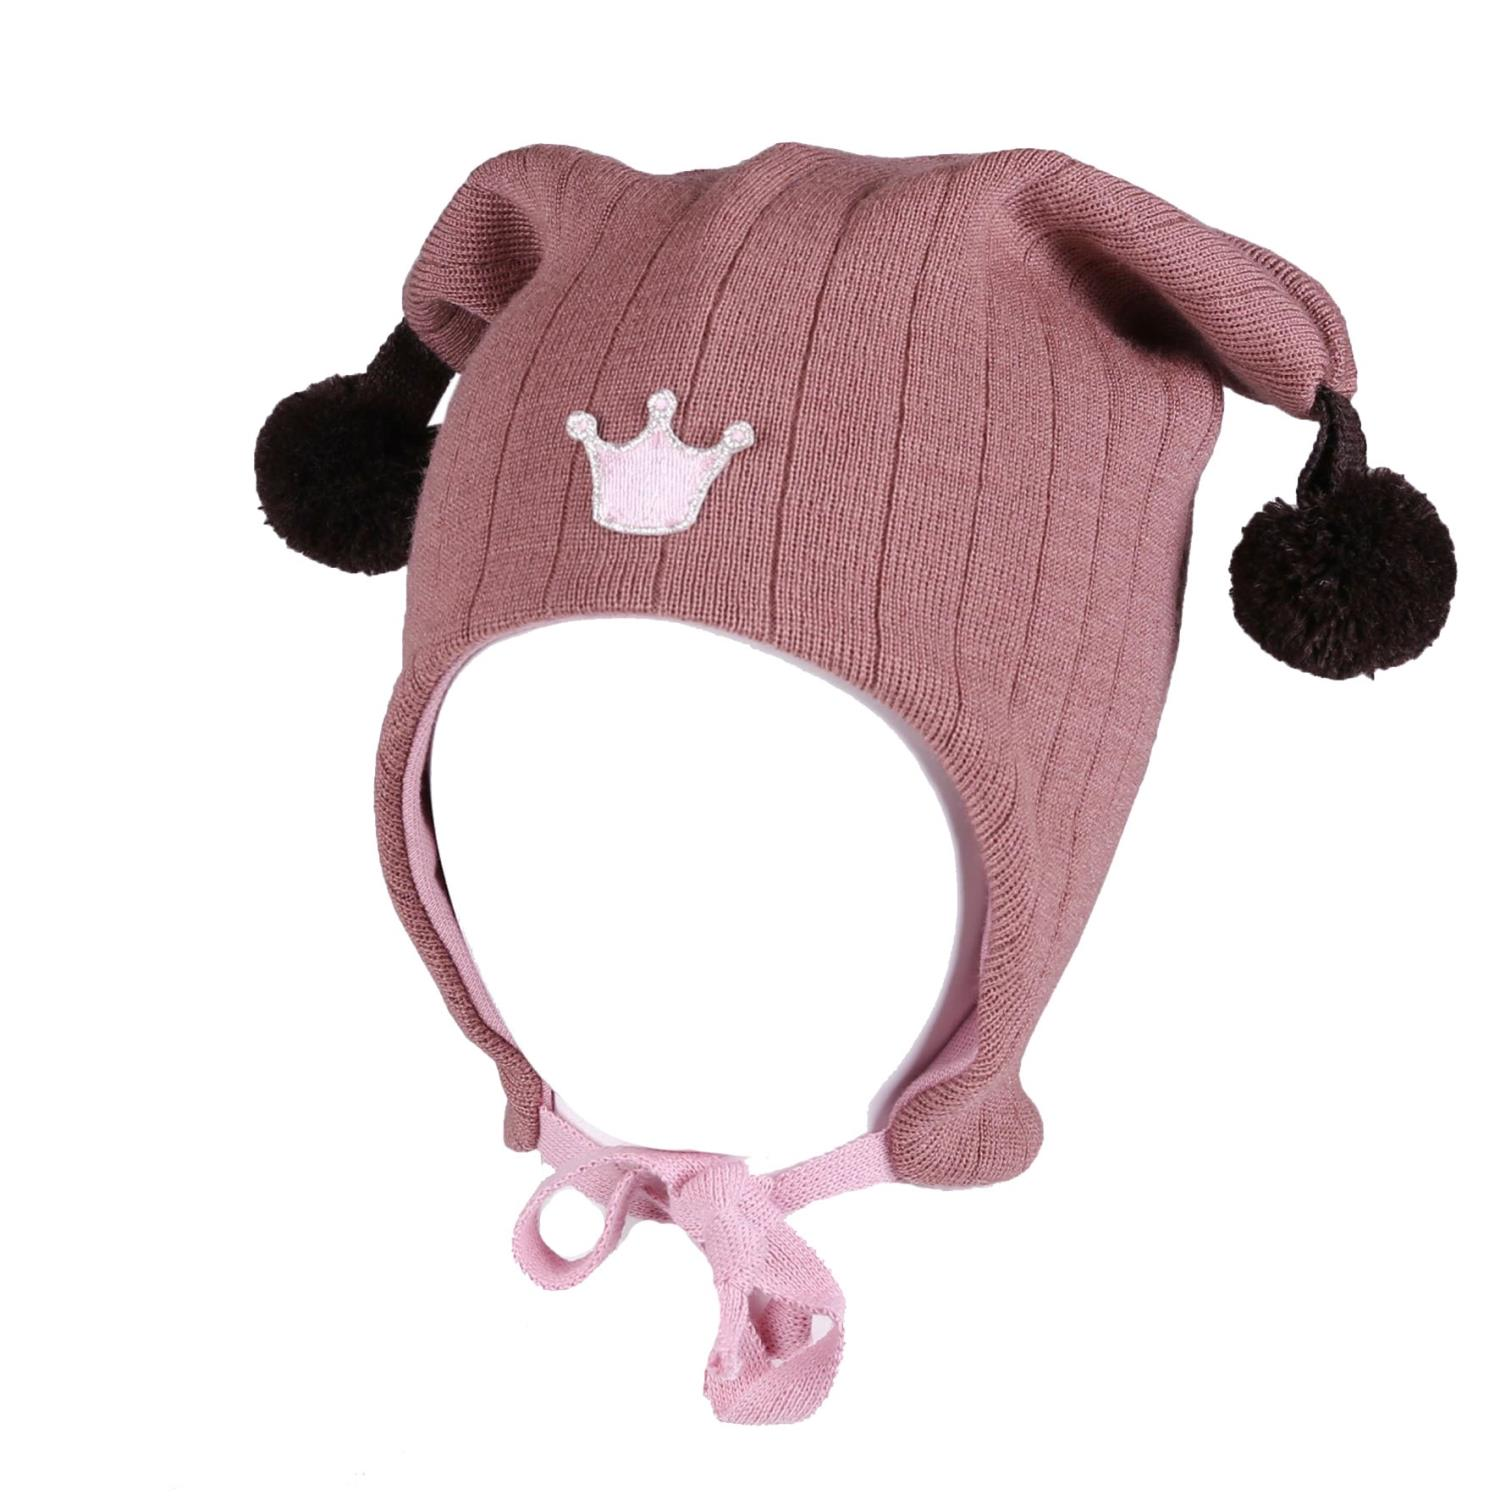 Kivat Joker hat crown, rosa/brun